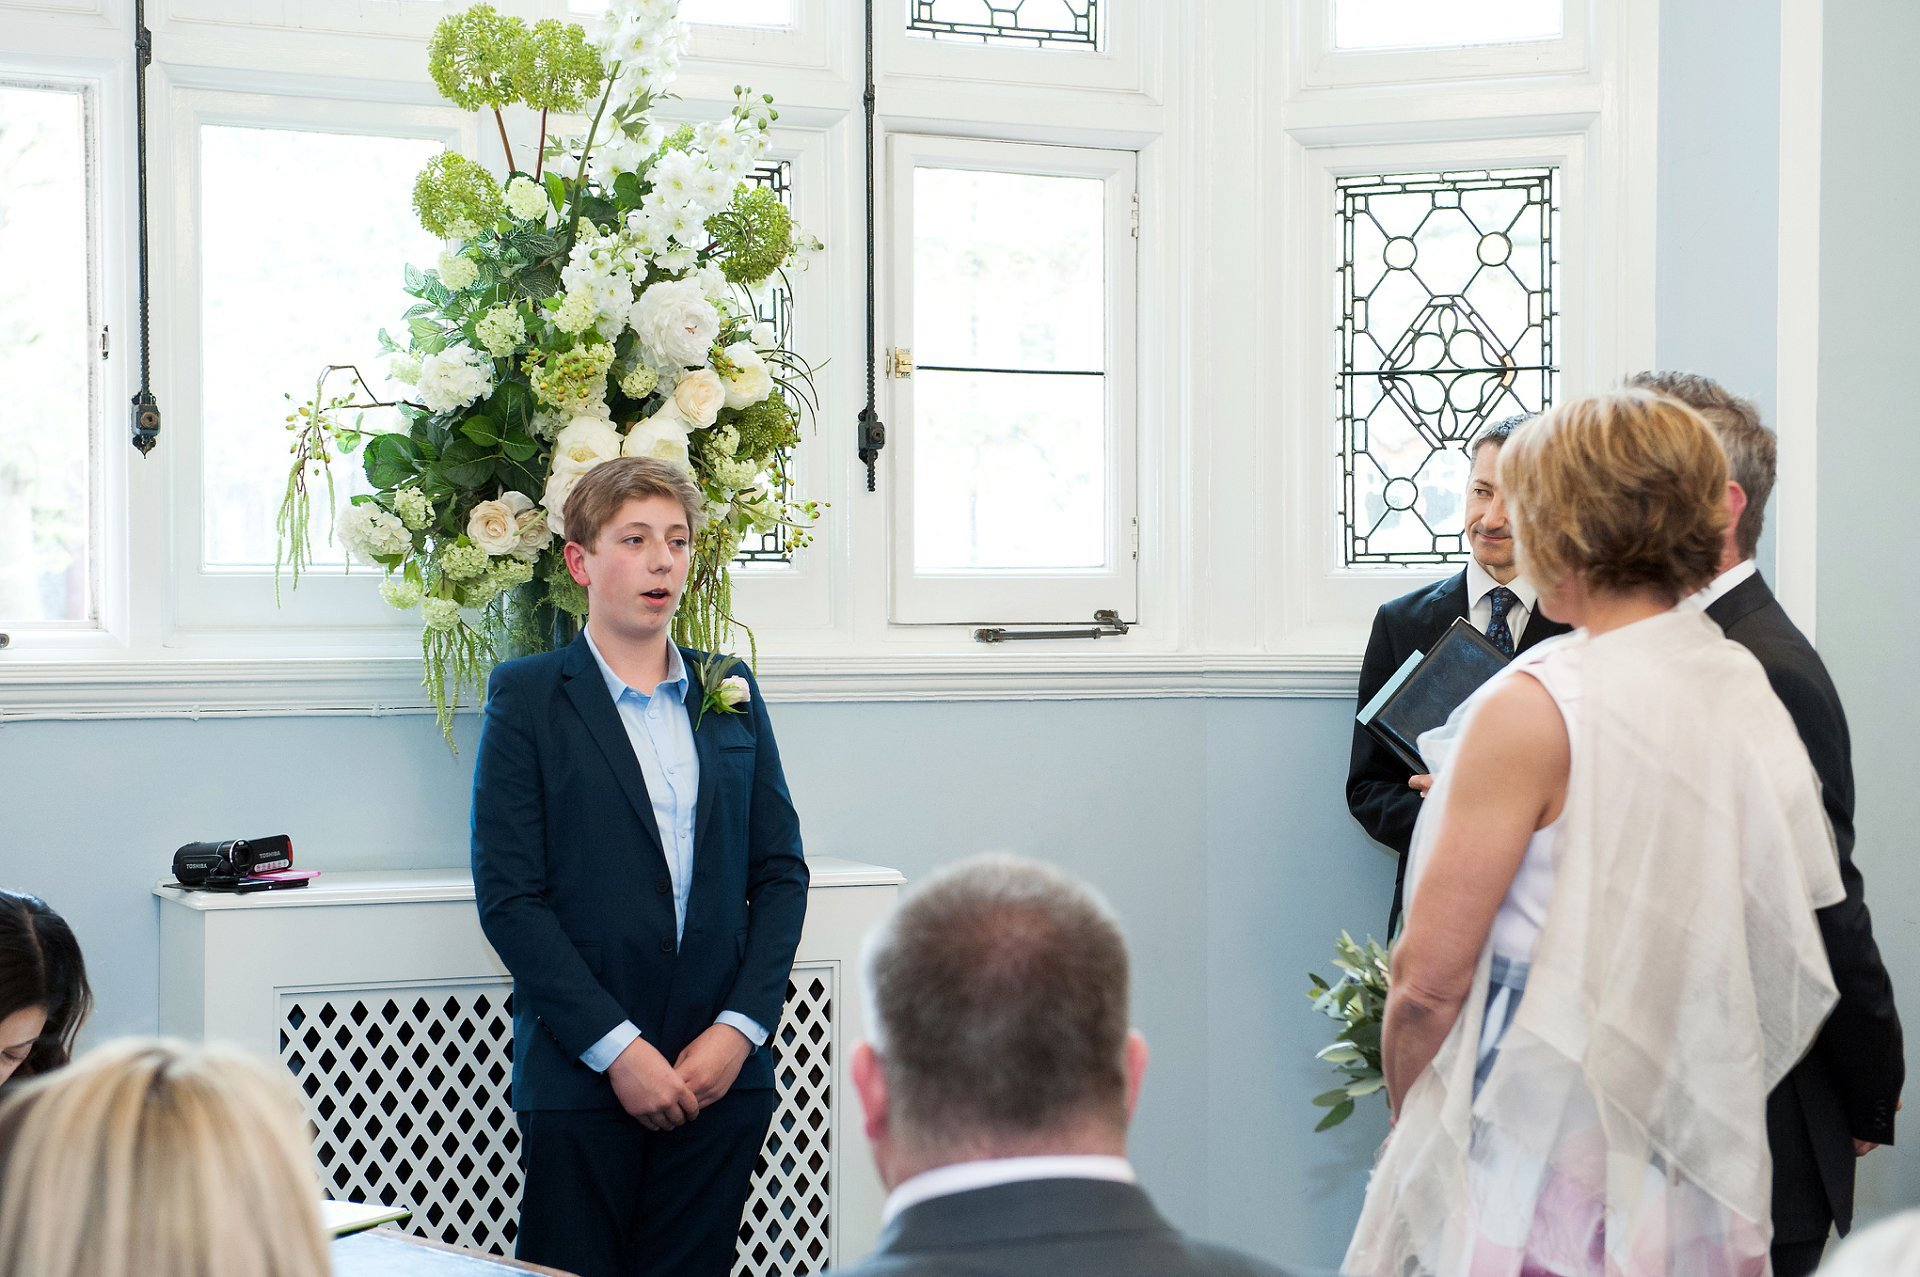 The bride & groom's son does a reading, learnt by heart, to the guests at melanie & Sid's wedding